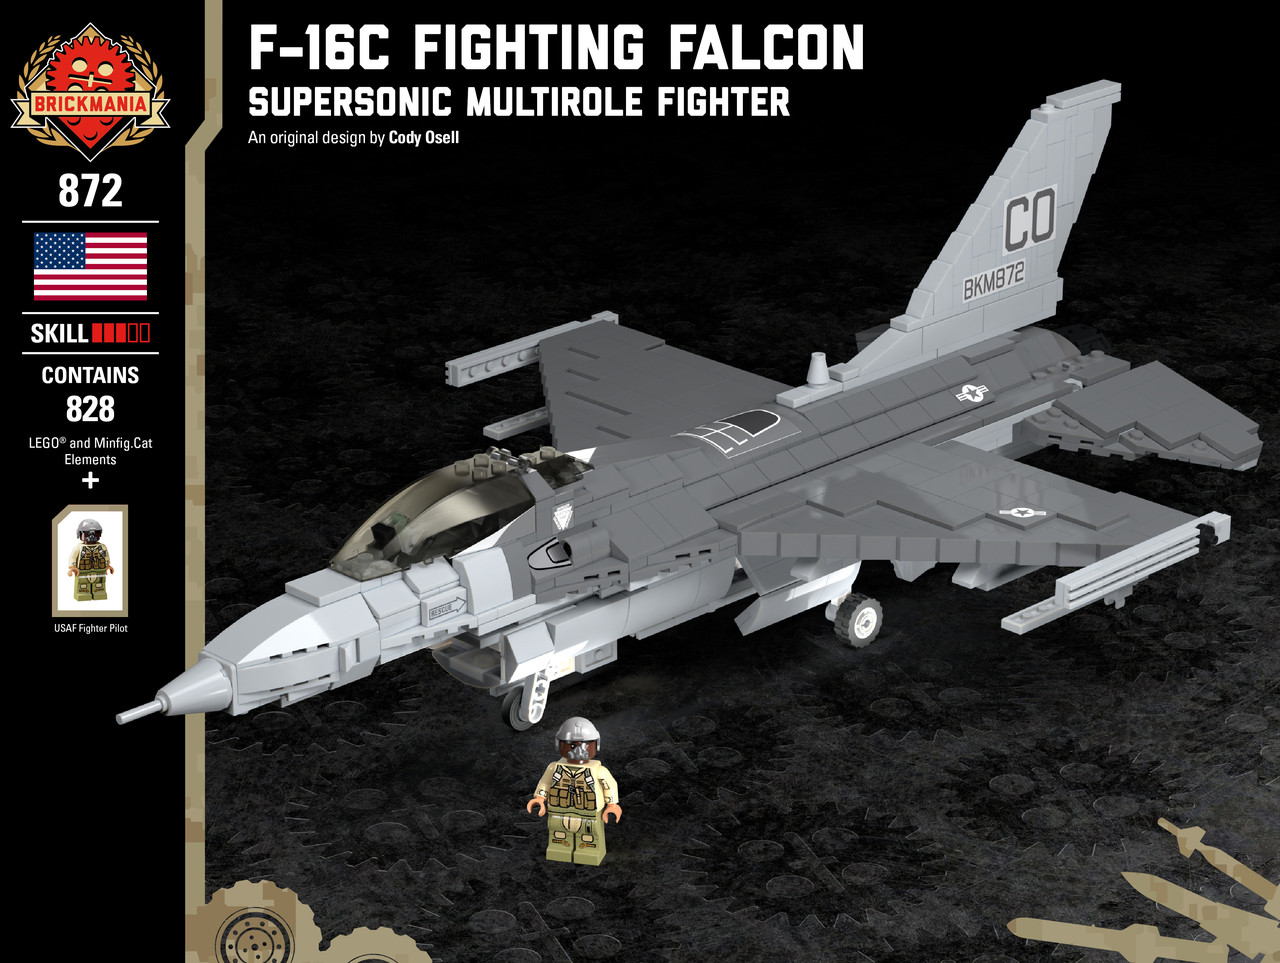 F-16C Fighting Falcon - Supersonic Multirole Fighter